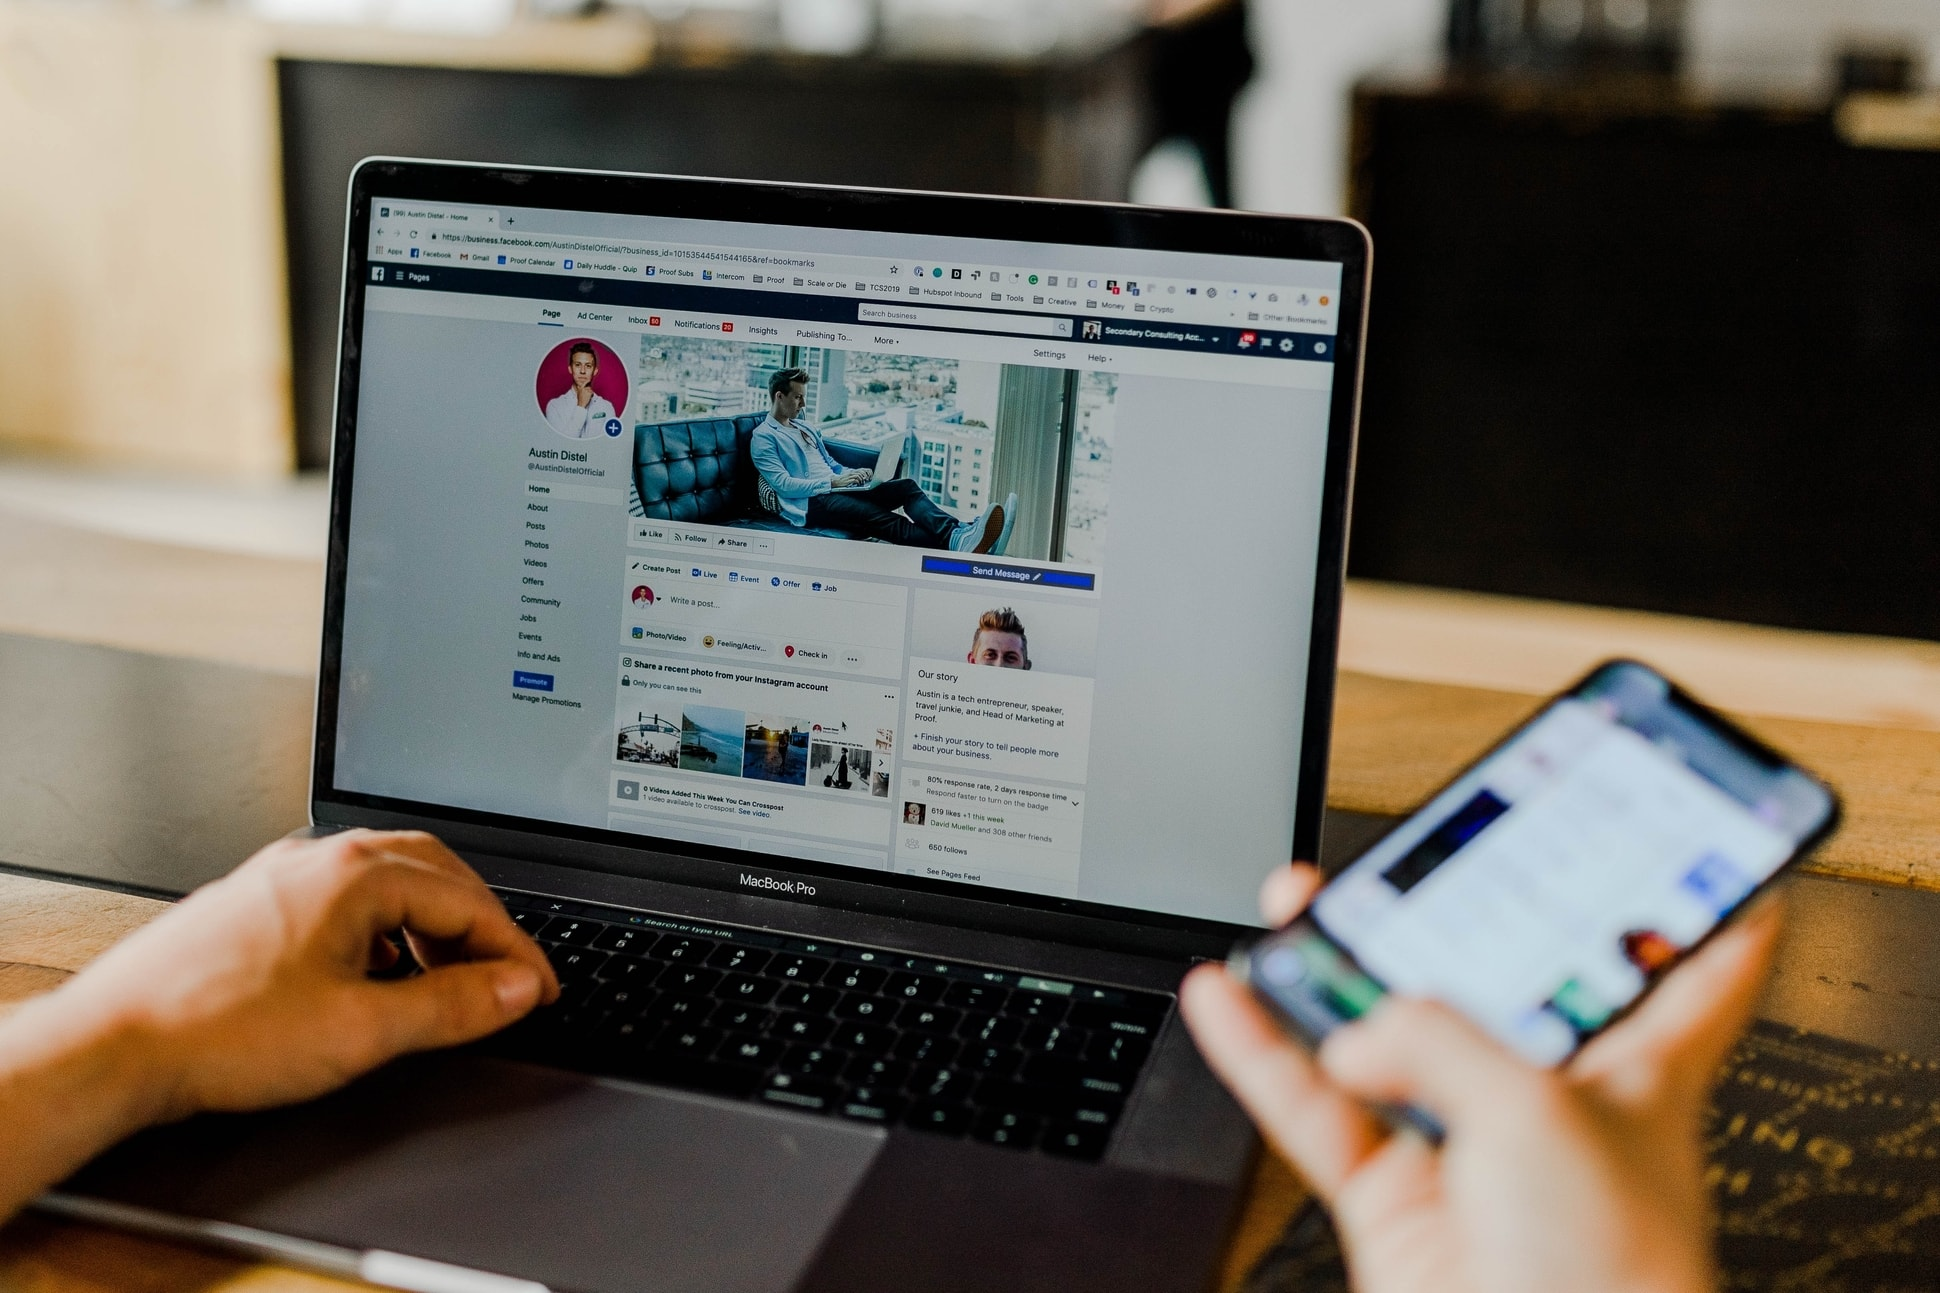 8 Simple Ways To Optimize Your Social Media Shares In 2021